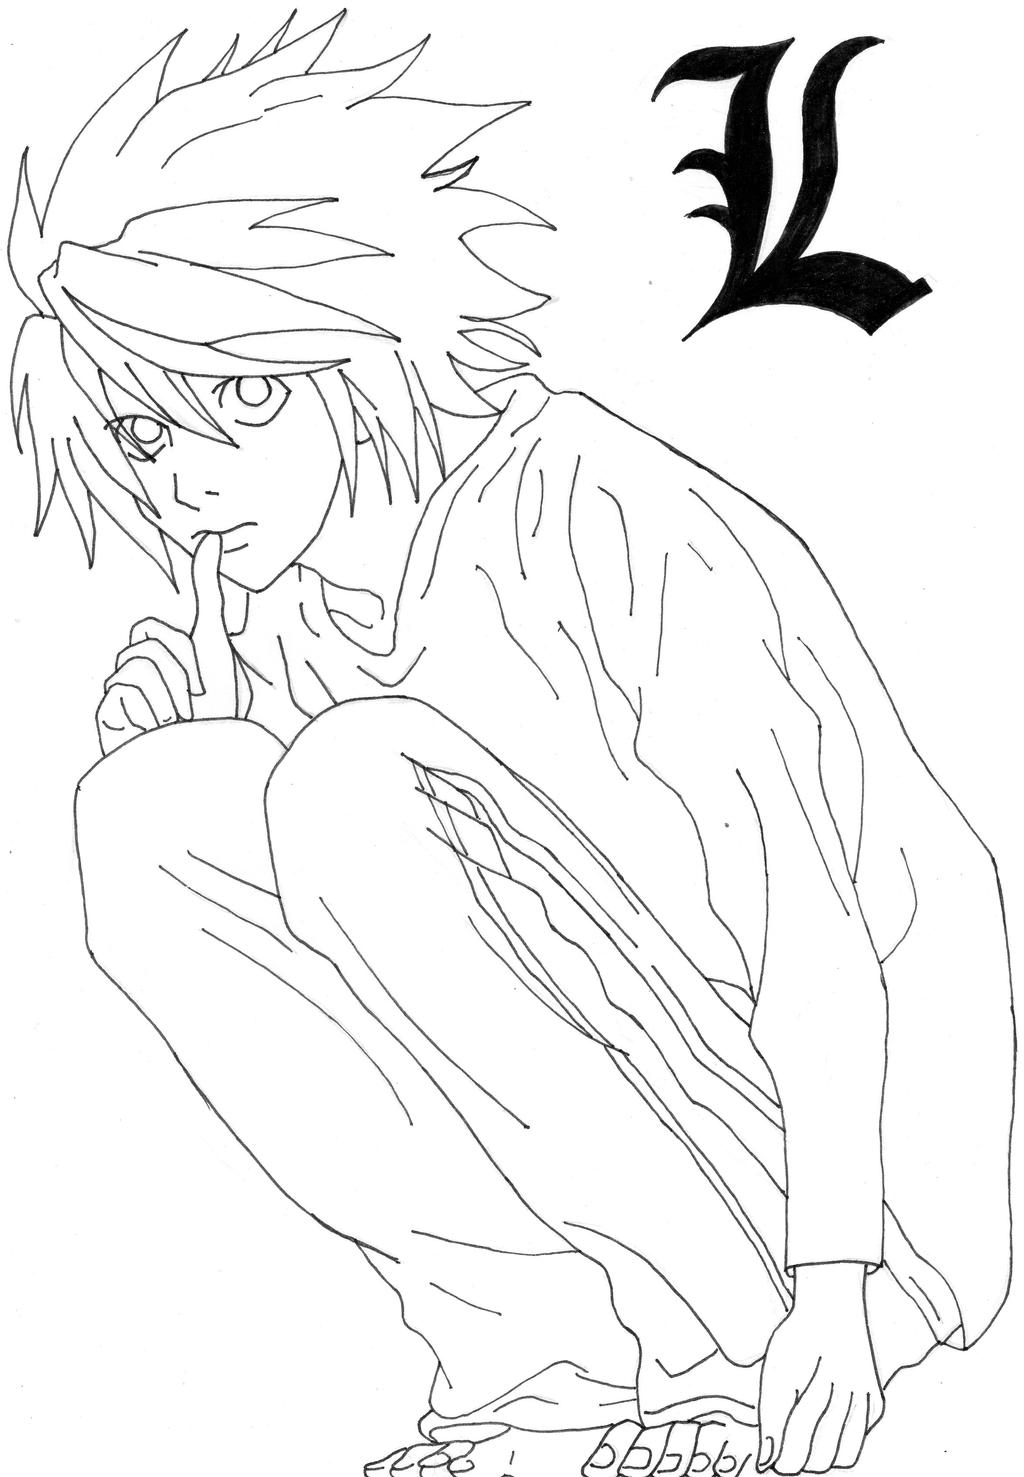 deathnote coloring pages - photo#14